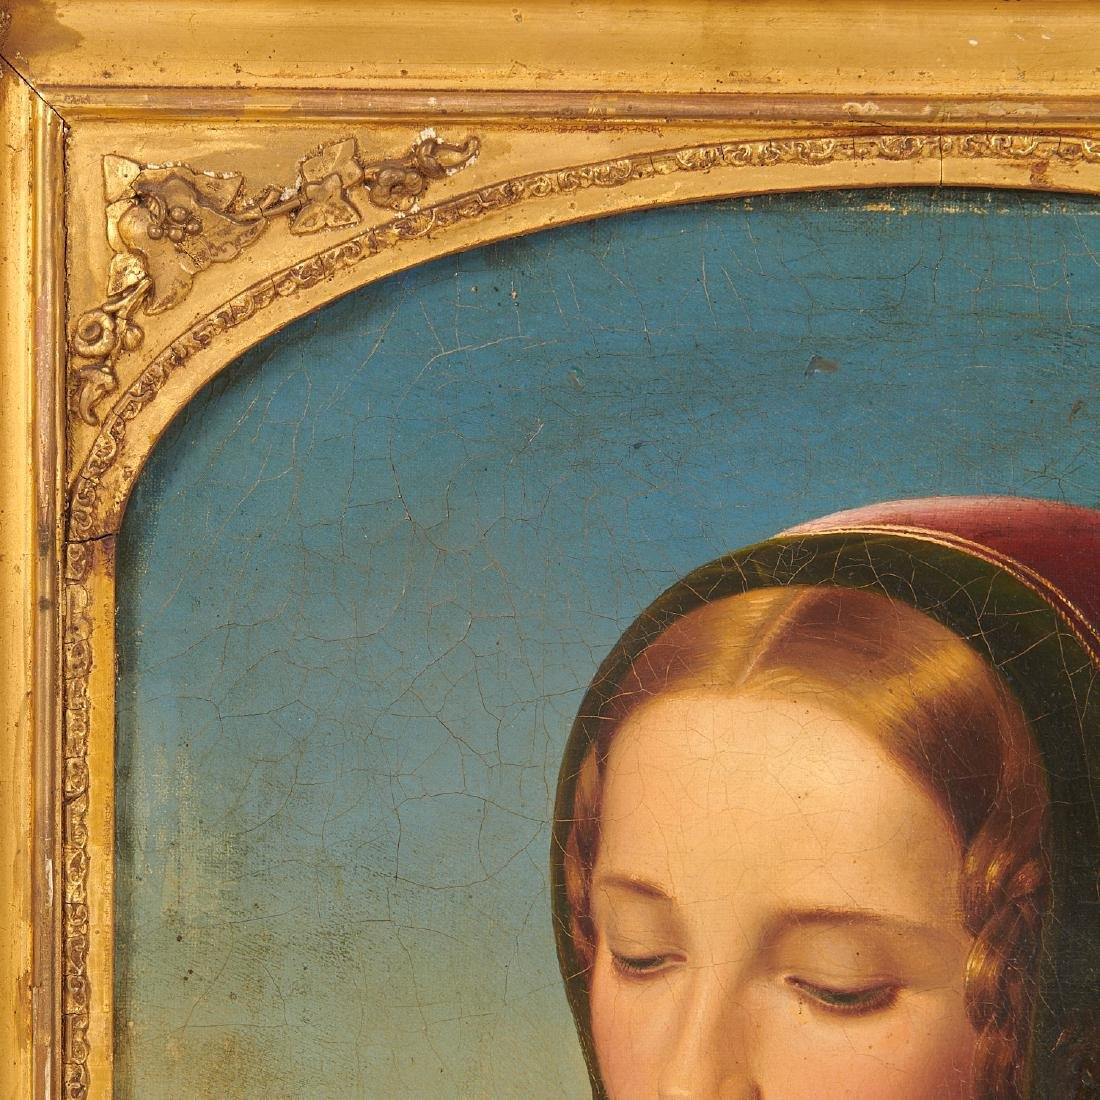 Giovanni Bellini (manner of), painting - 3